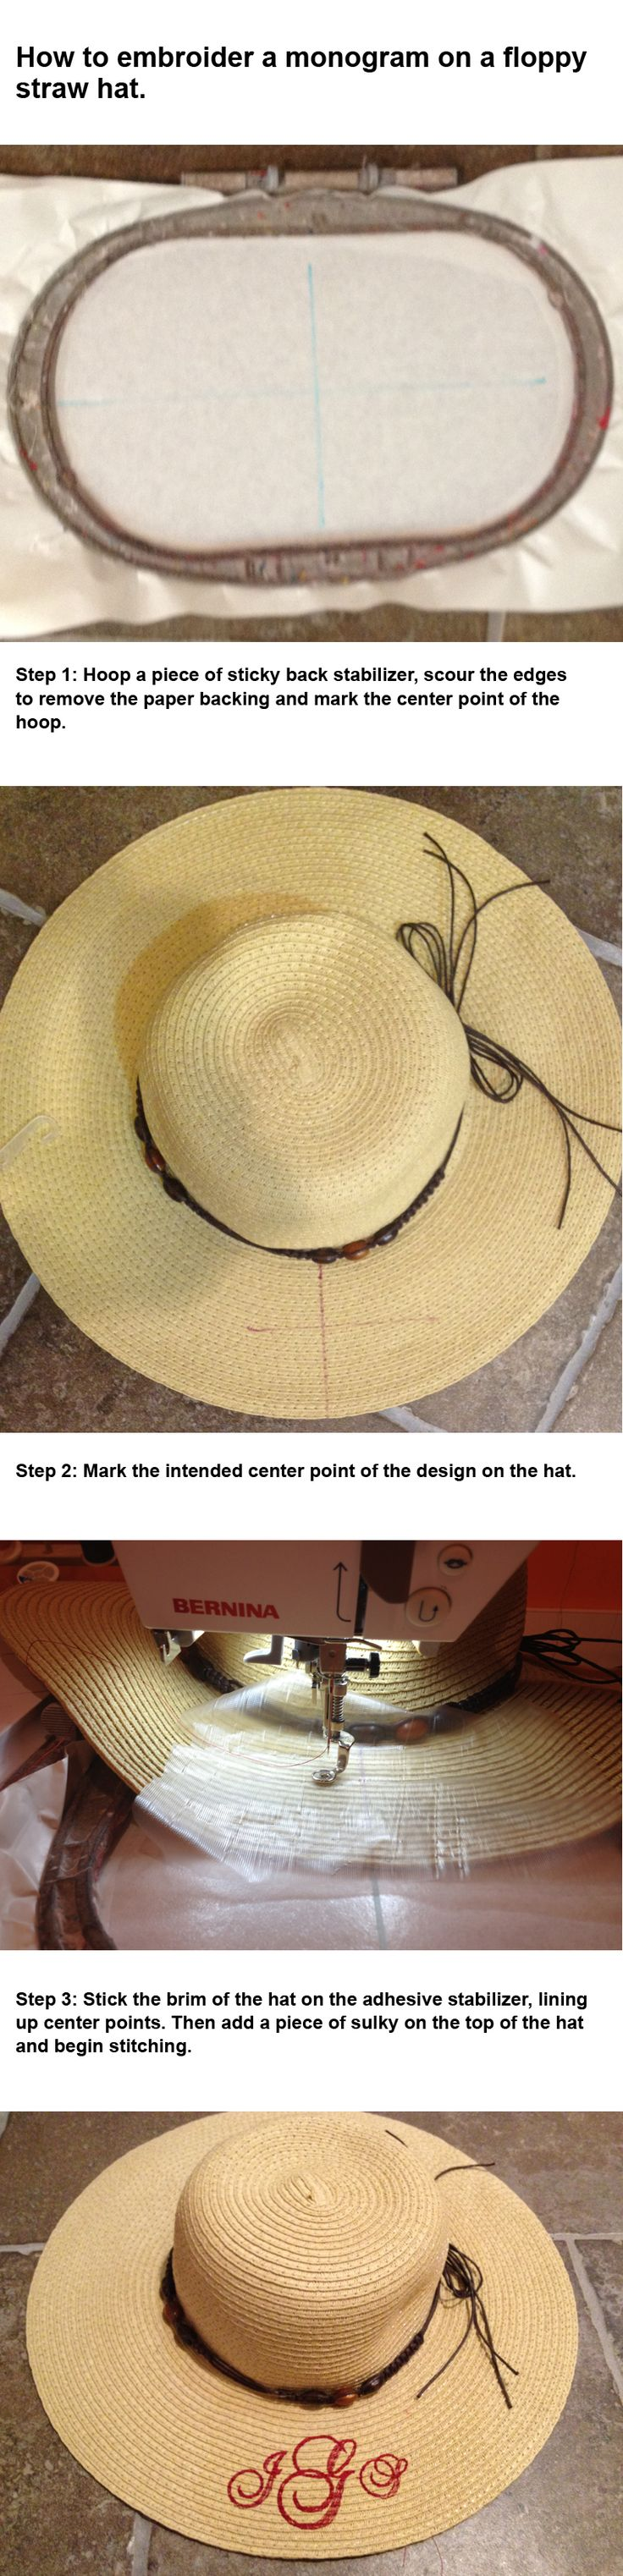 How to embroider on a straw hat